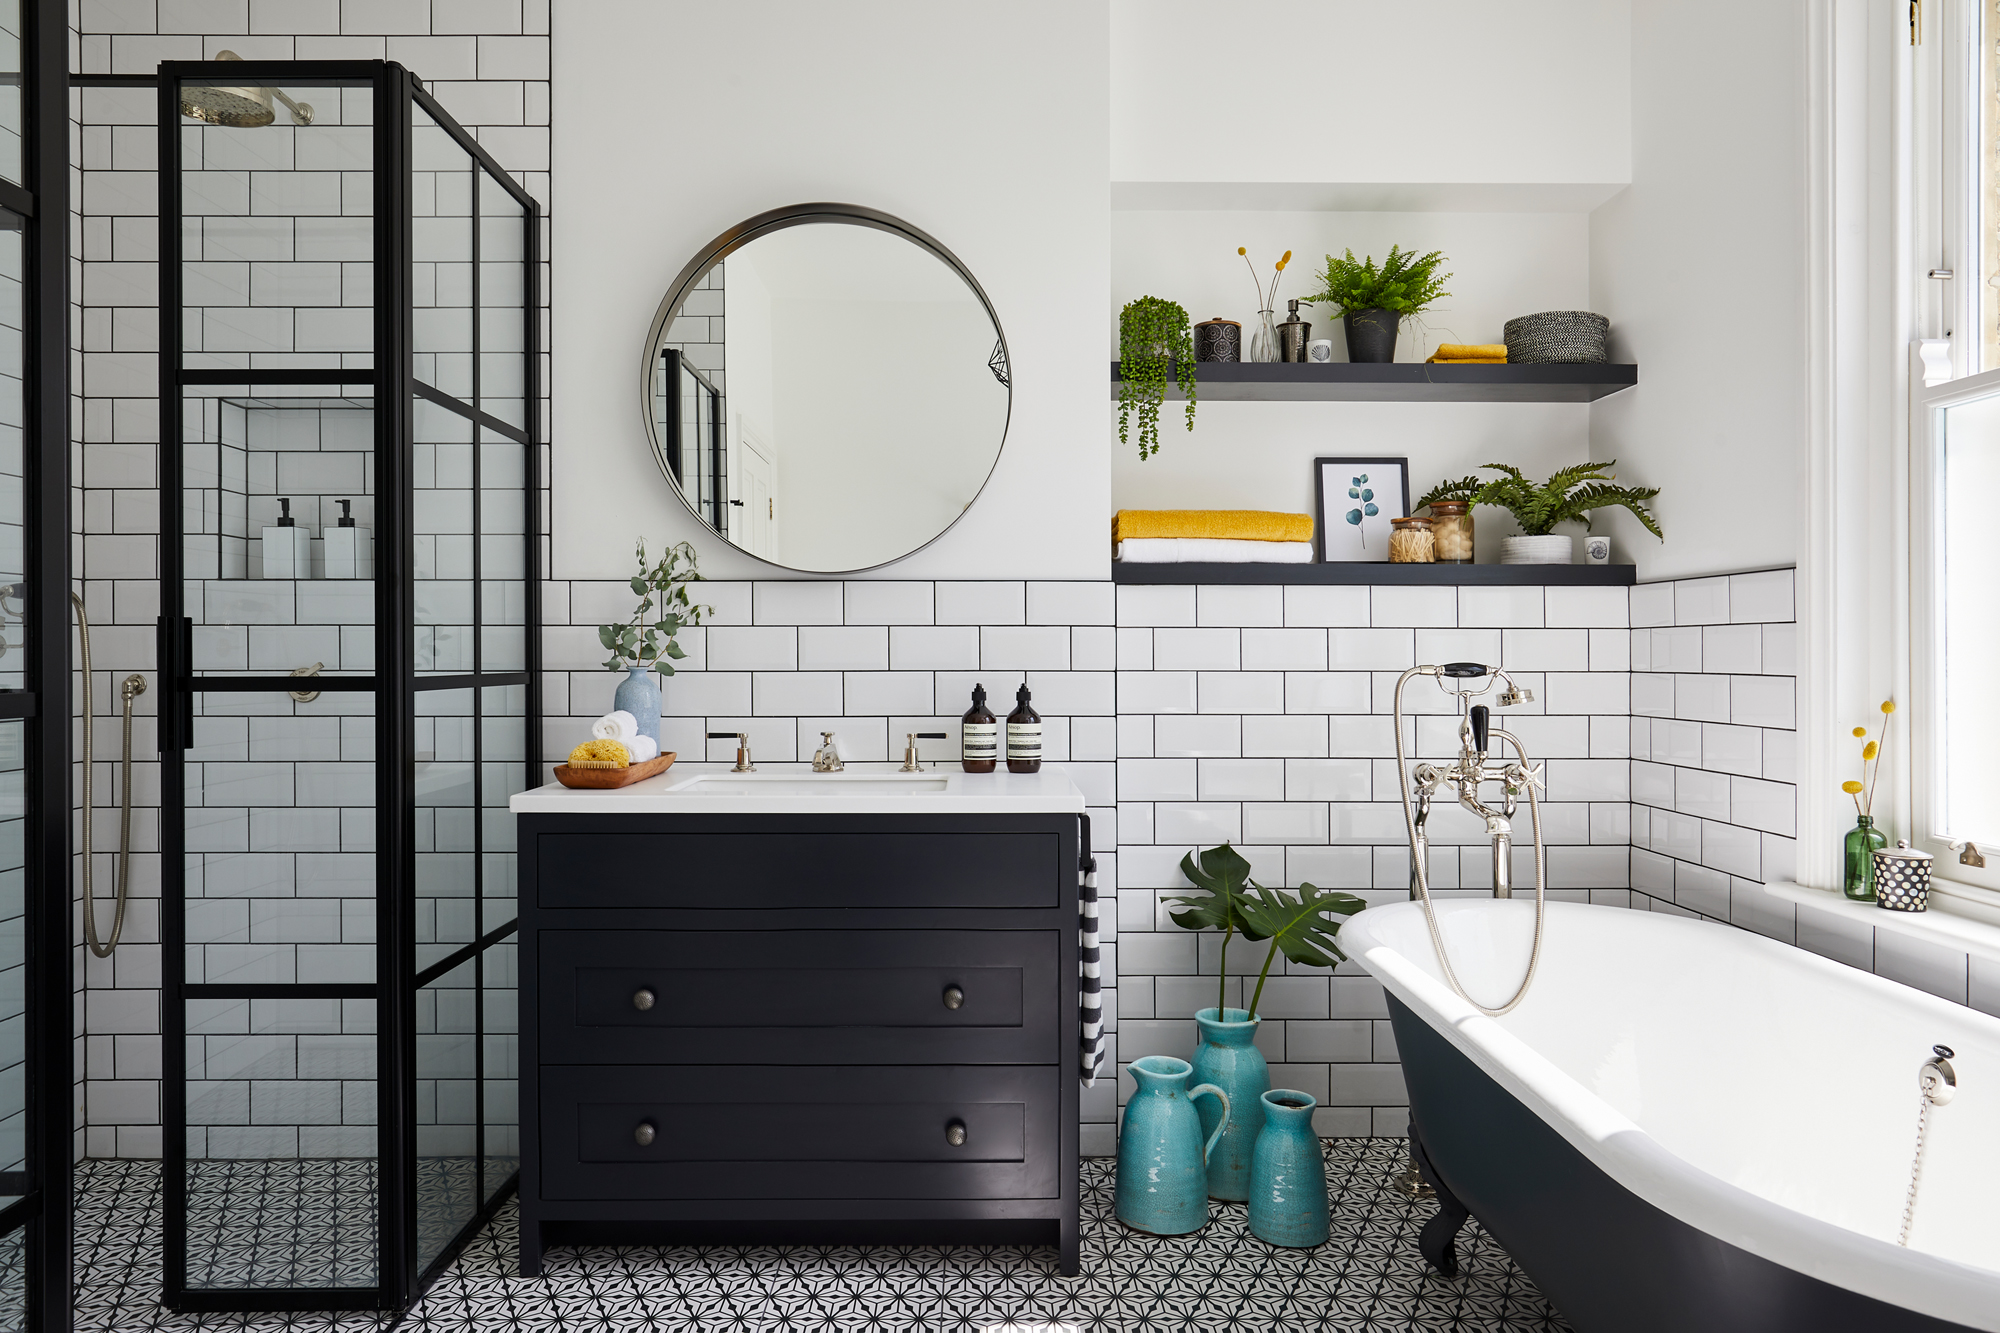 Bathroom design: an expert guide to creating your dream space